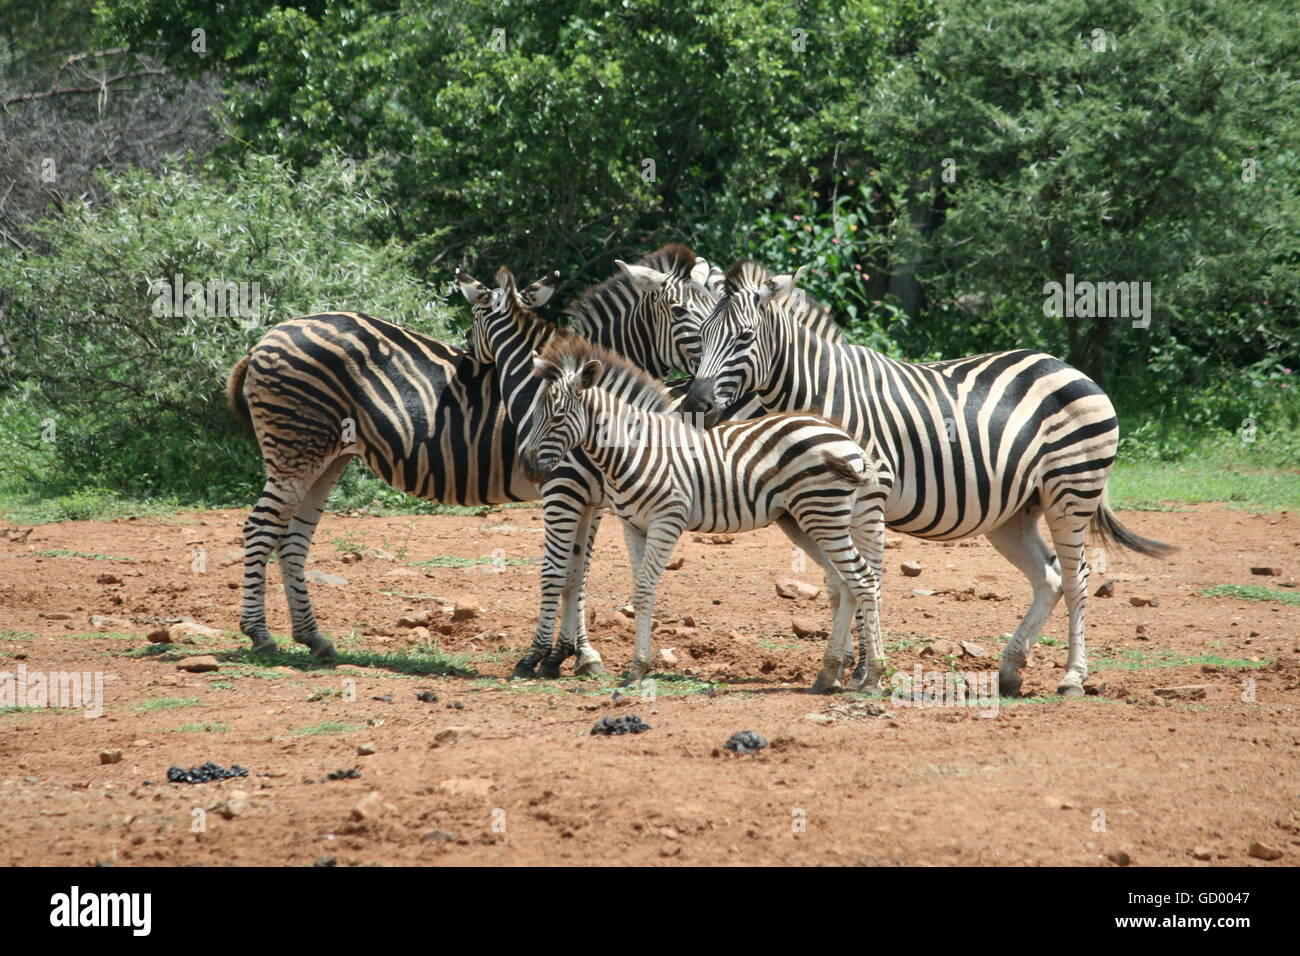 A zebra family of four standing close to each other in Pilanesberg National Park - Stock Image